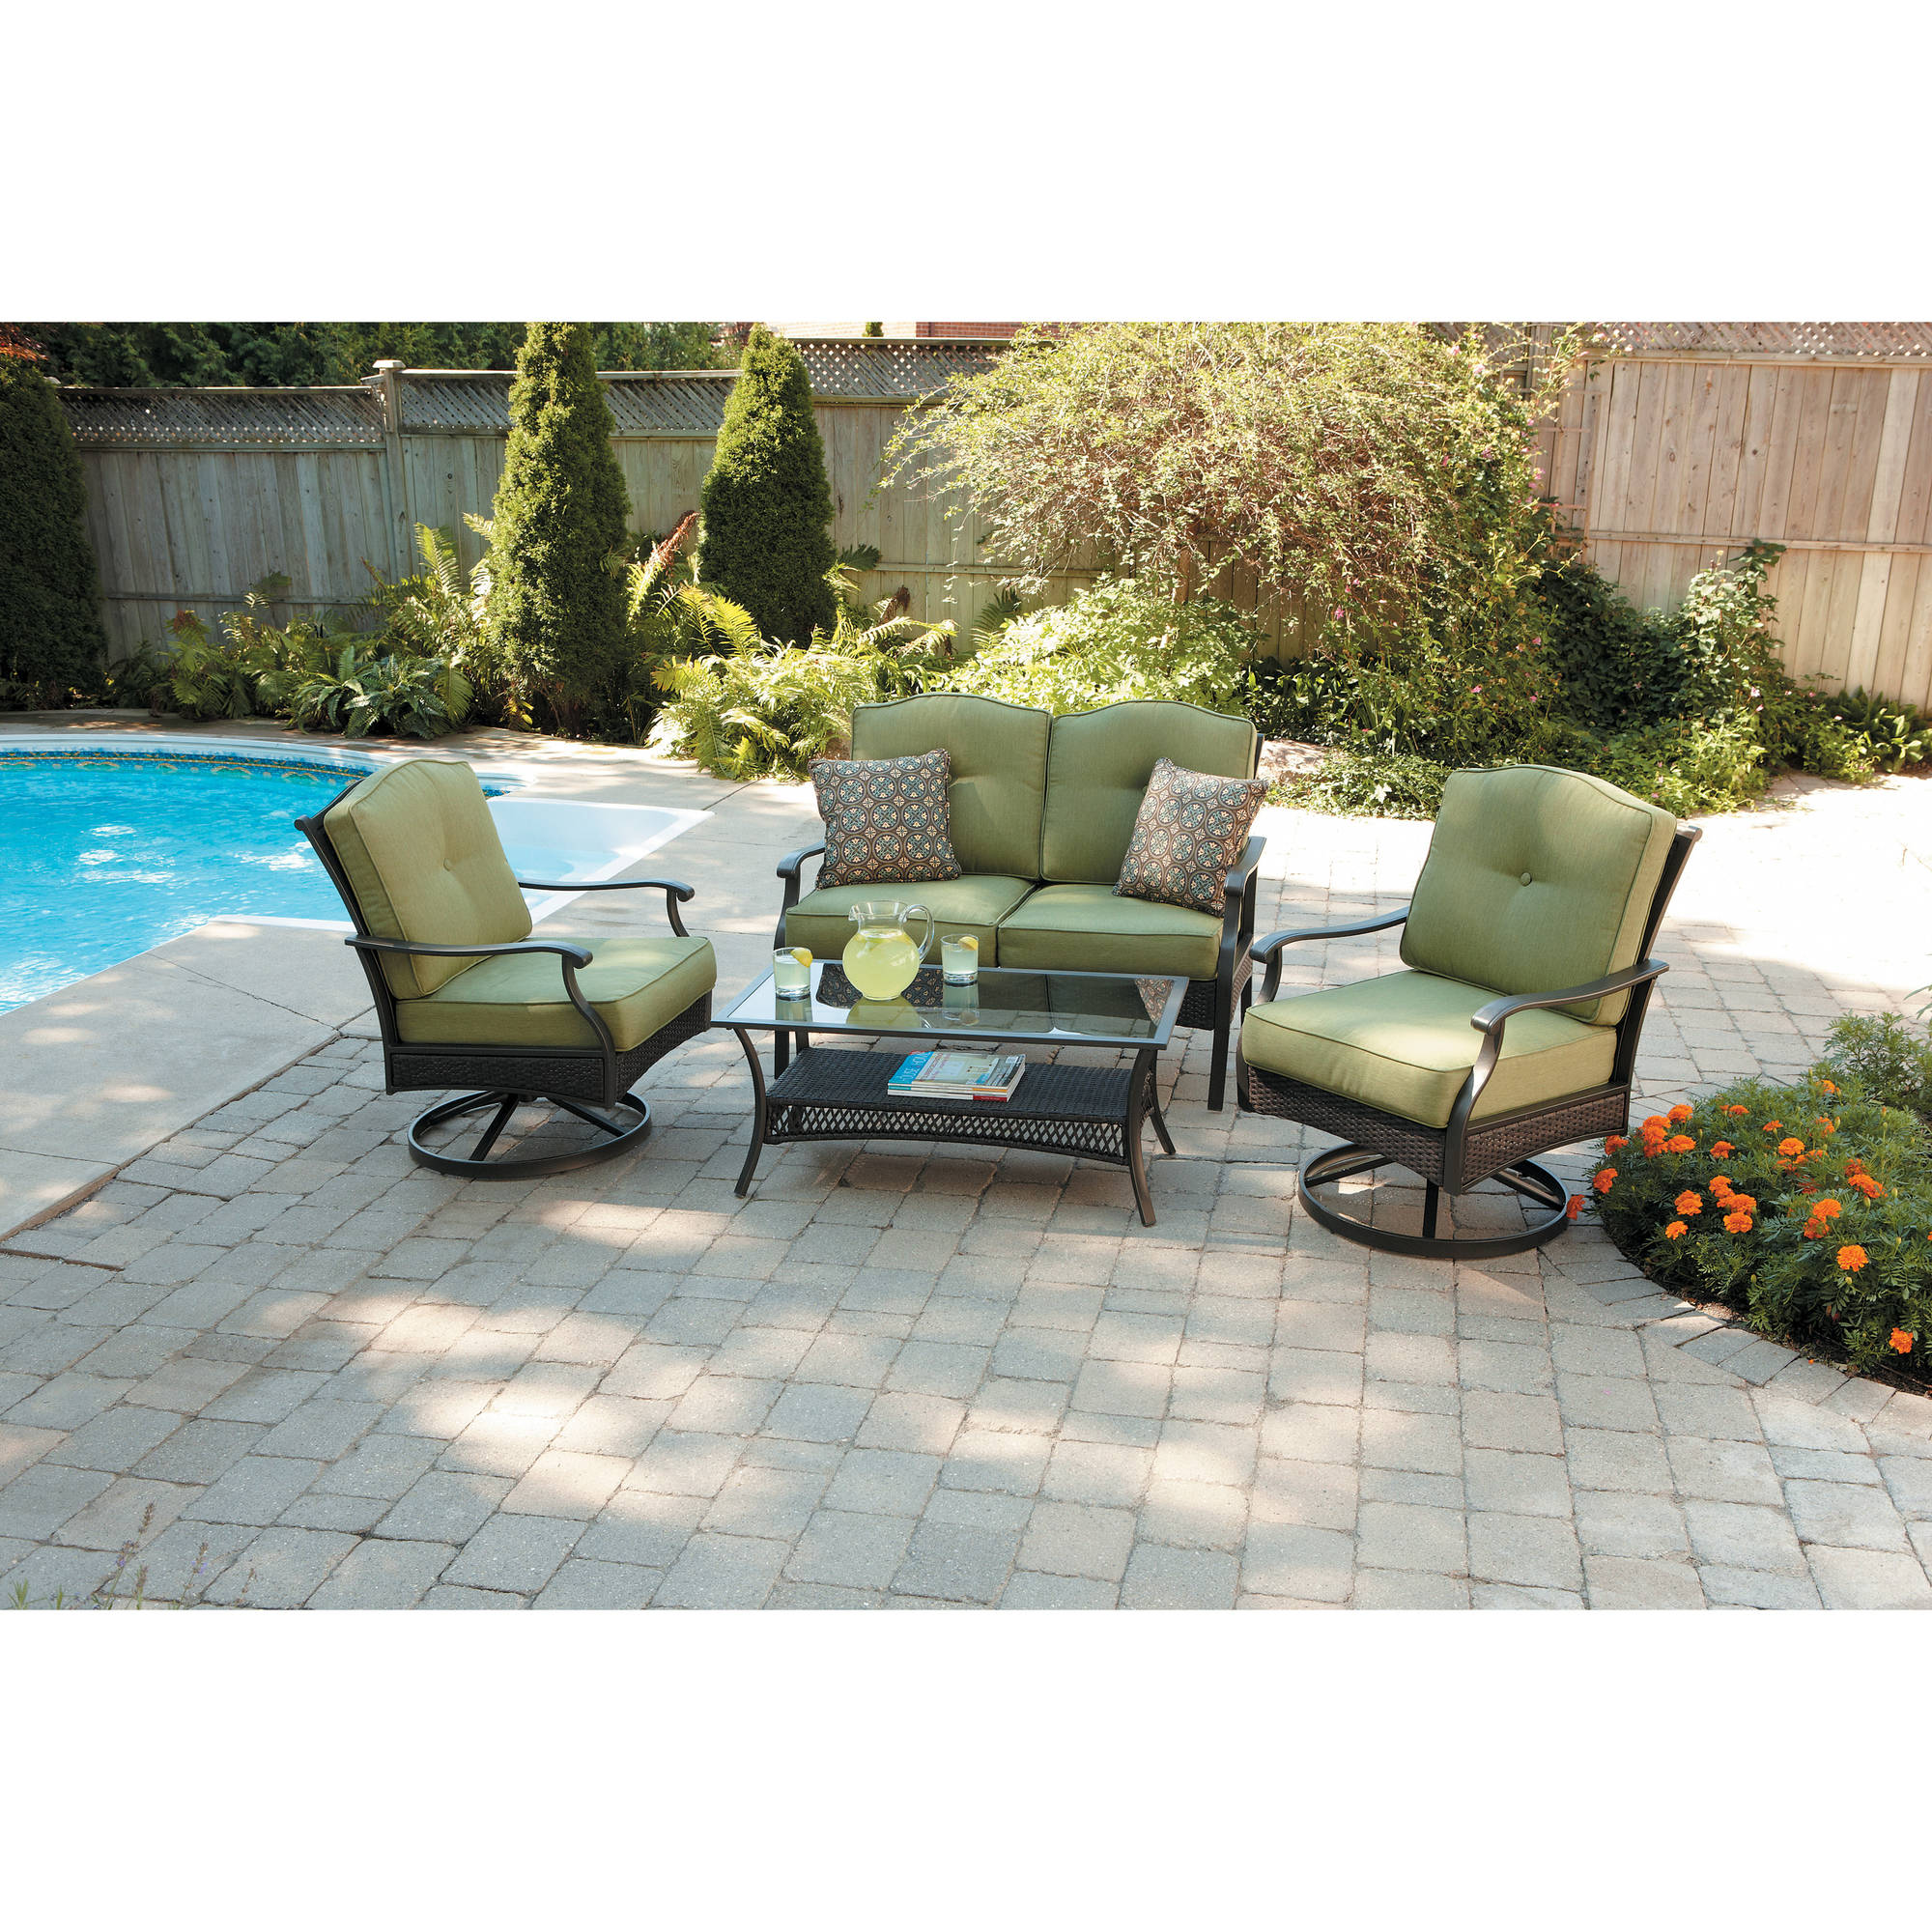 Better Homes and Gardens Providence 4 Piece Patio Conversation Set    Walmart com. Better Homes and Gardens Providence 4 Piece Patio Conversation Set